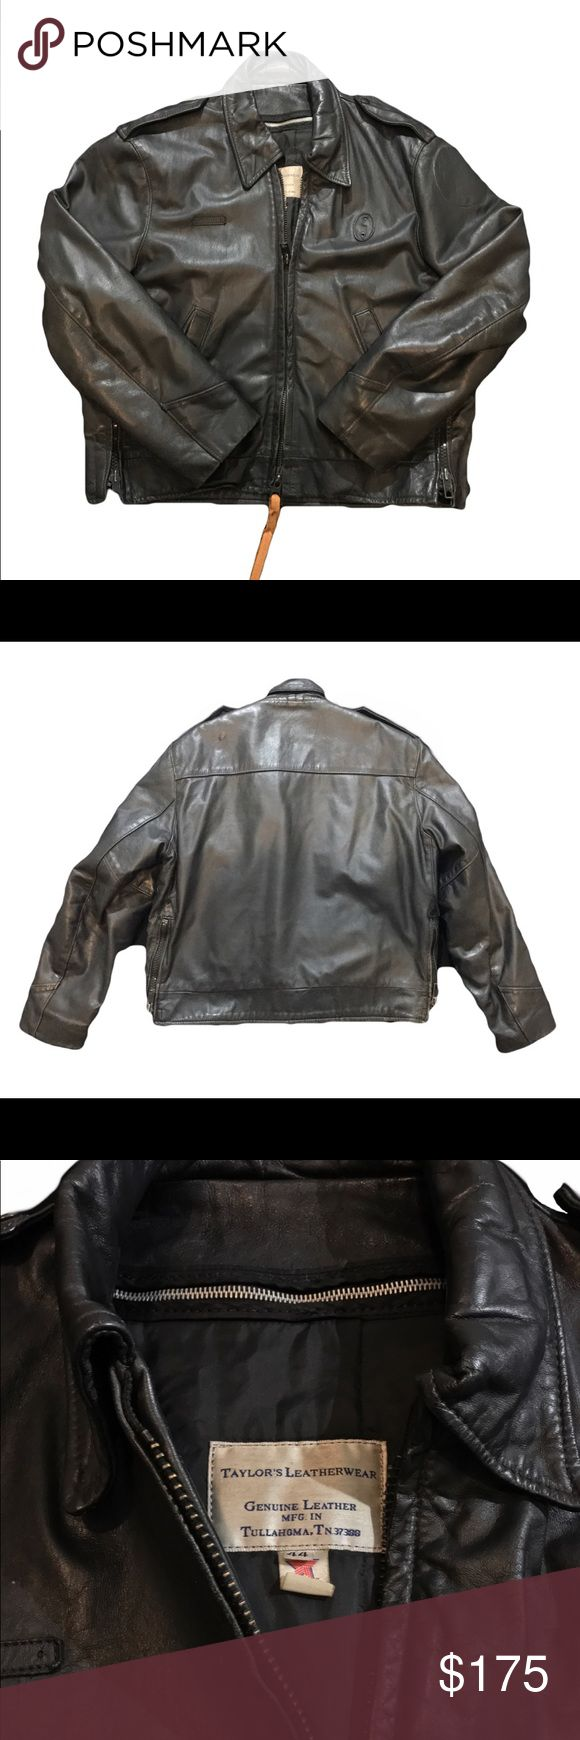 """Vintage """"Taylor's Leatherwear"""" police jacket This is a vintage genuine leather jacket handmade by Taylor Leatherwear in Tullahoma, TN. The company is now located in Nashville. It was made for motorcycle police and measures size 44. Still has places for badges and patches on sleeves. Great piece of vintage clothing for a great price! Vintage Jackets & Coats"""